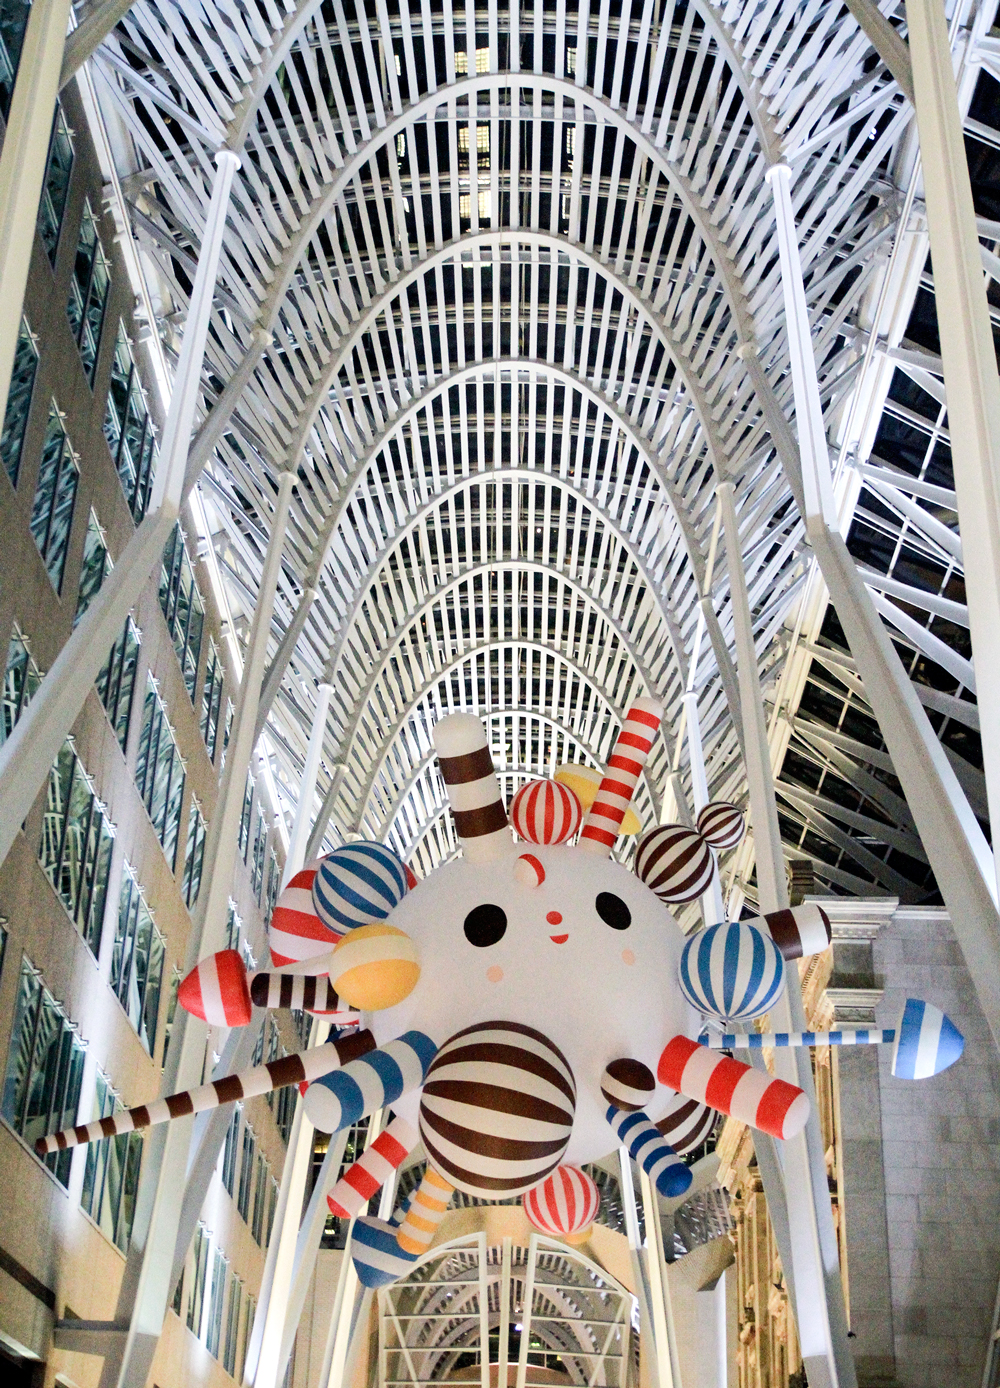 FriendsWithYou Starburst Art Installation at Brookfield Place in Toronto